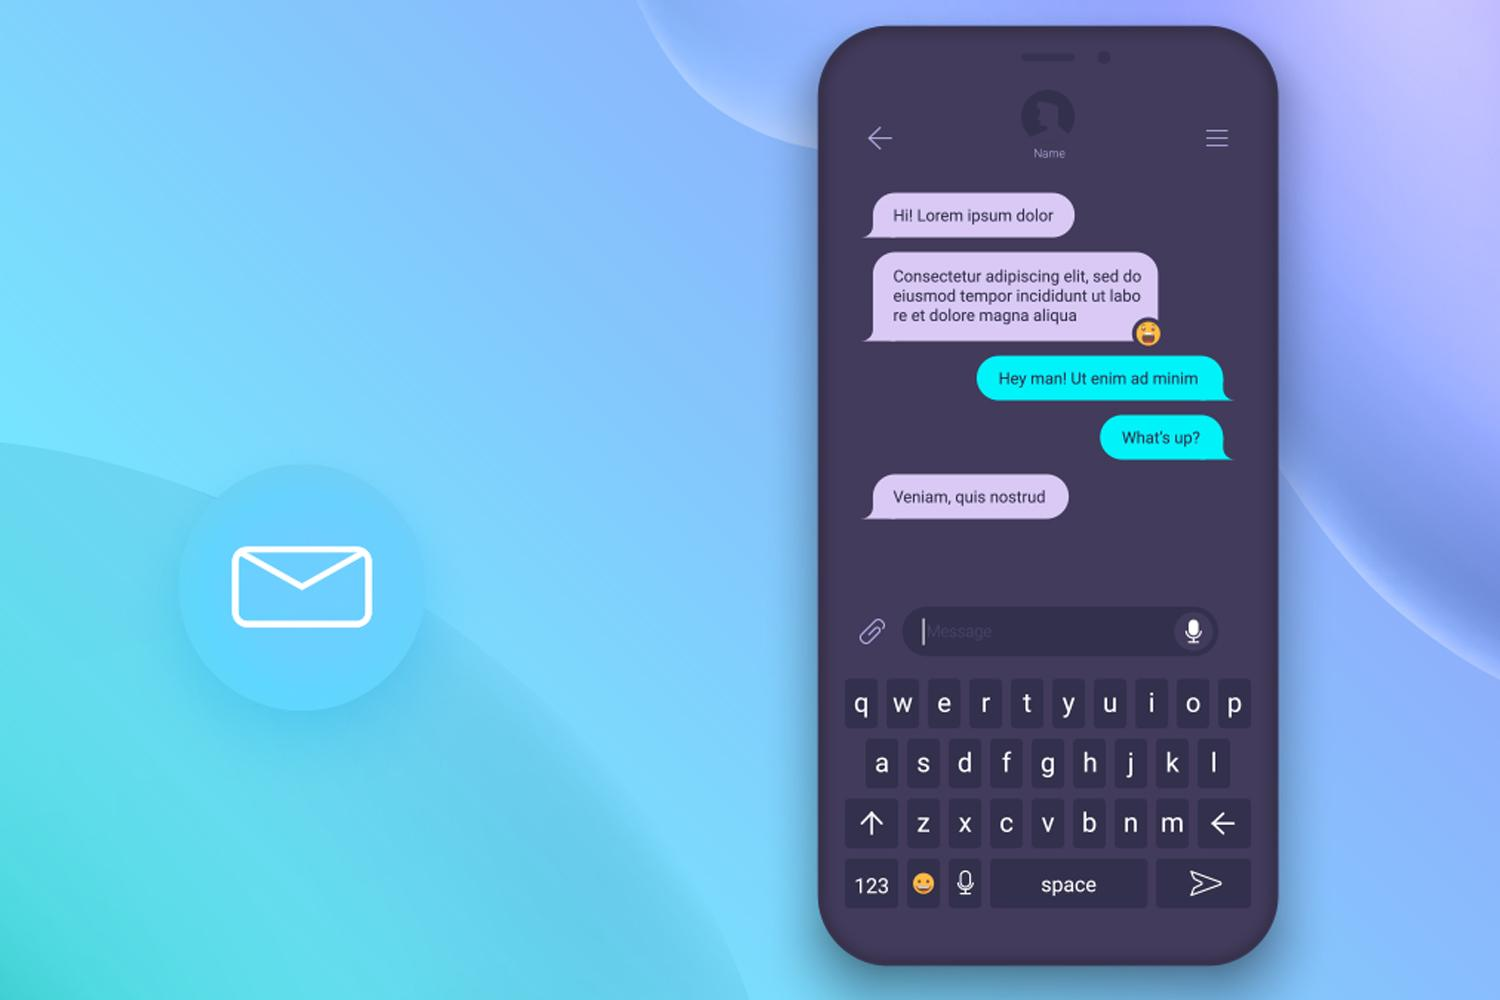 Experience 2030 phone chat